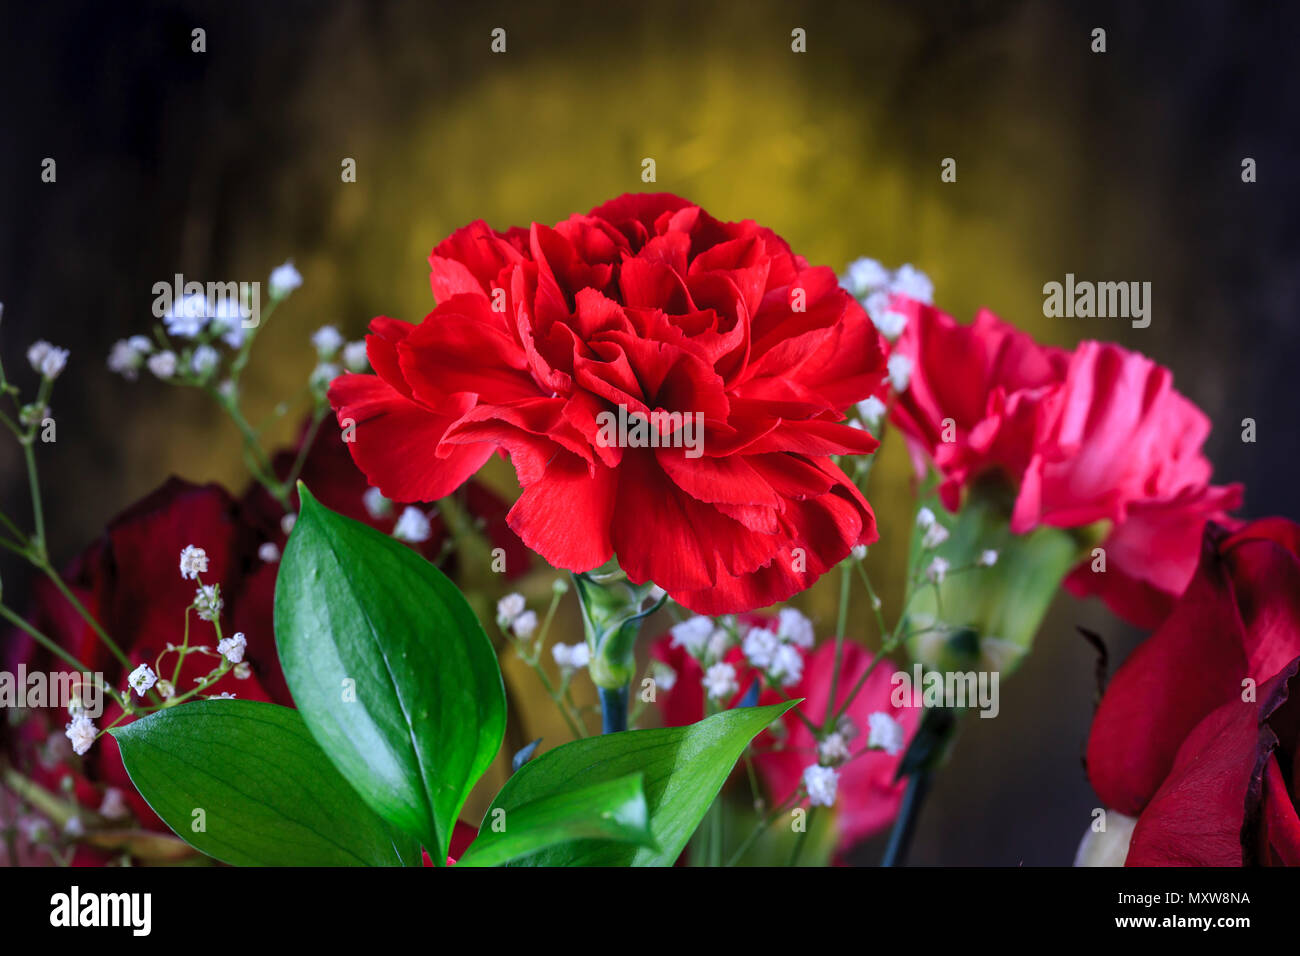 A close up photo of a red carnation within a bouquet. - Stock Image